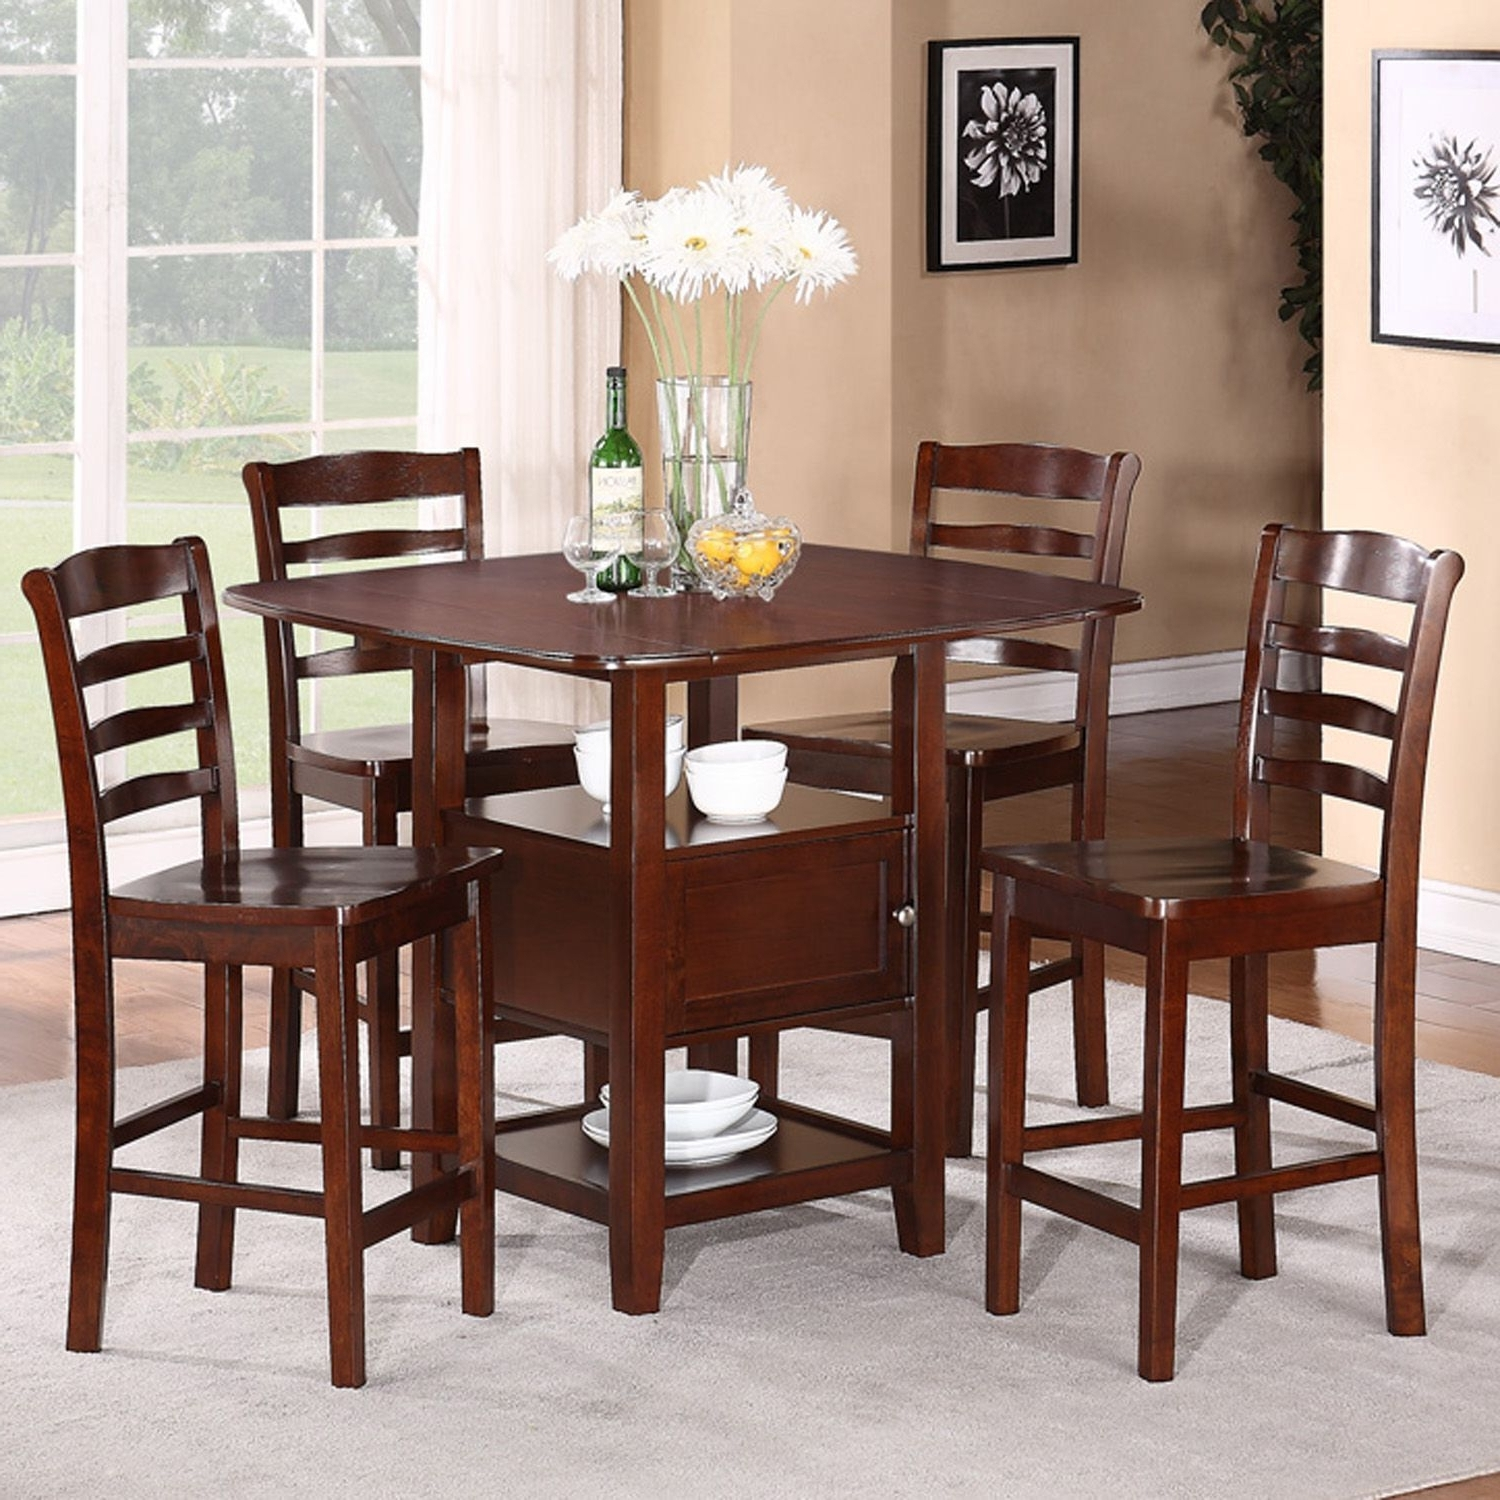 Widely Used Sears Round Dining Table Sets • Table Setting Ideas Regarding Craftsman Round Dining Tables (View 25 of 25)